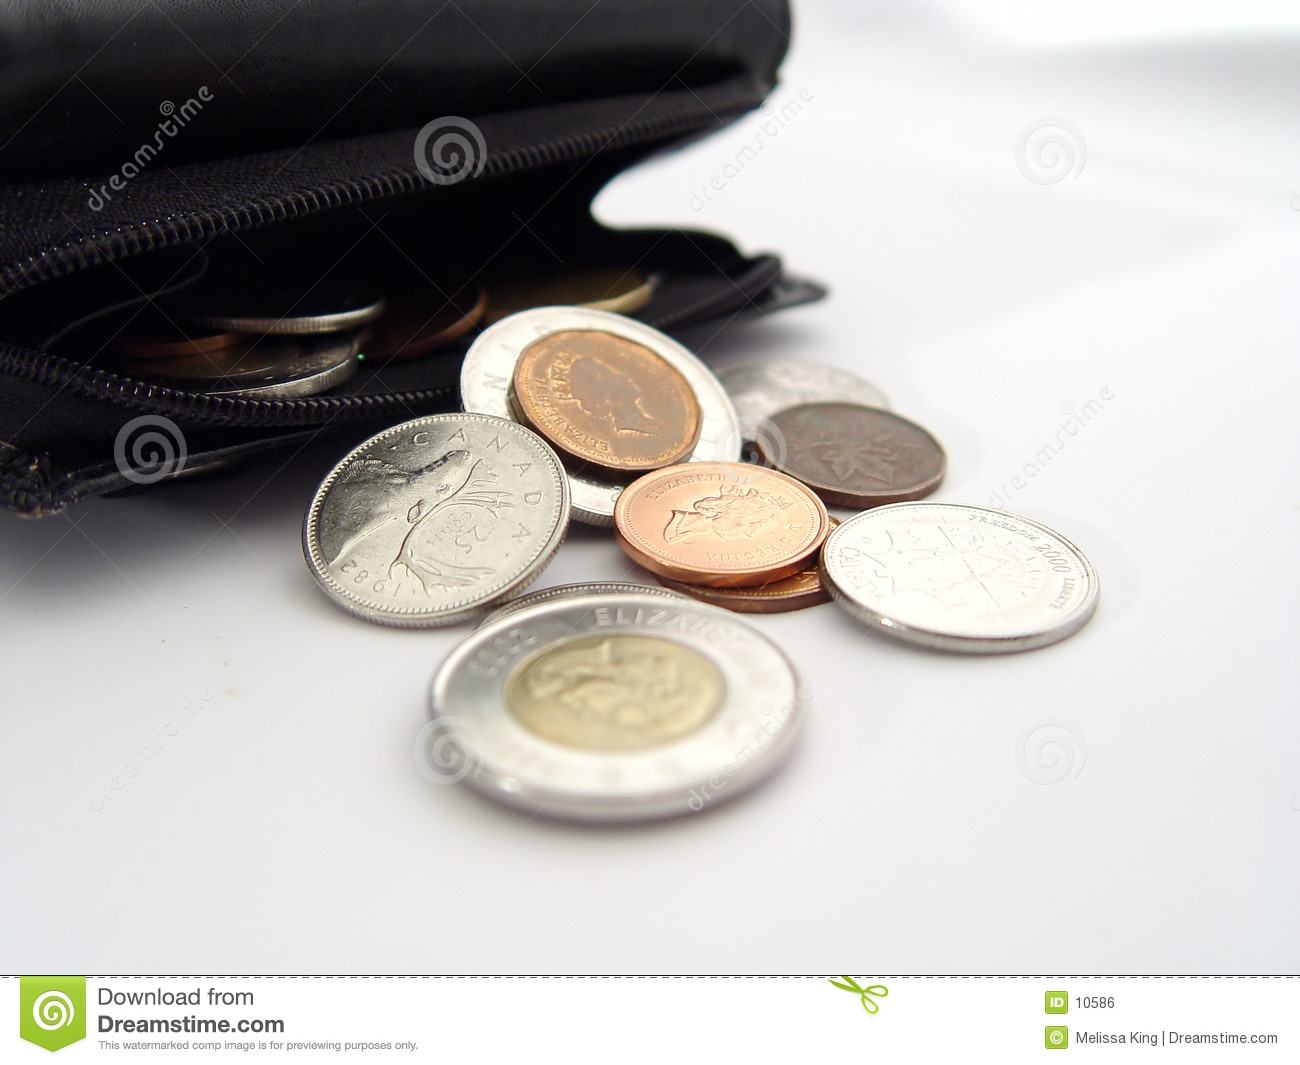 Coins from Wallet